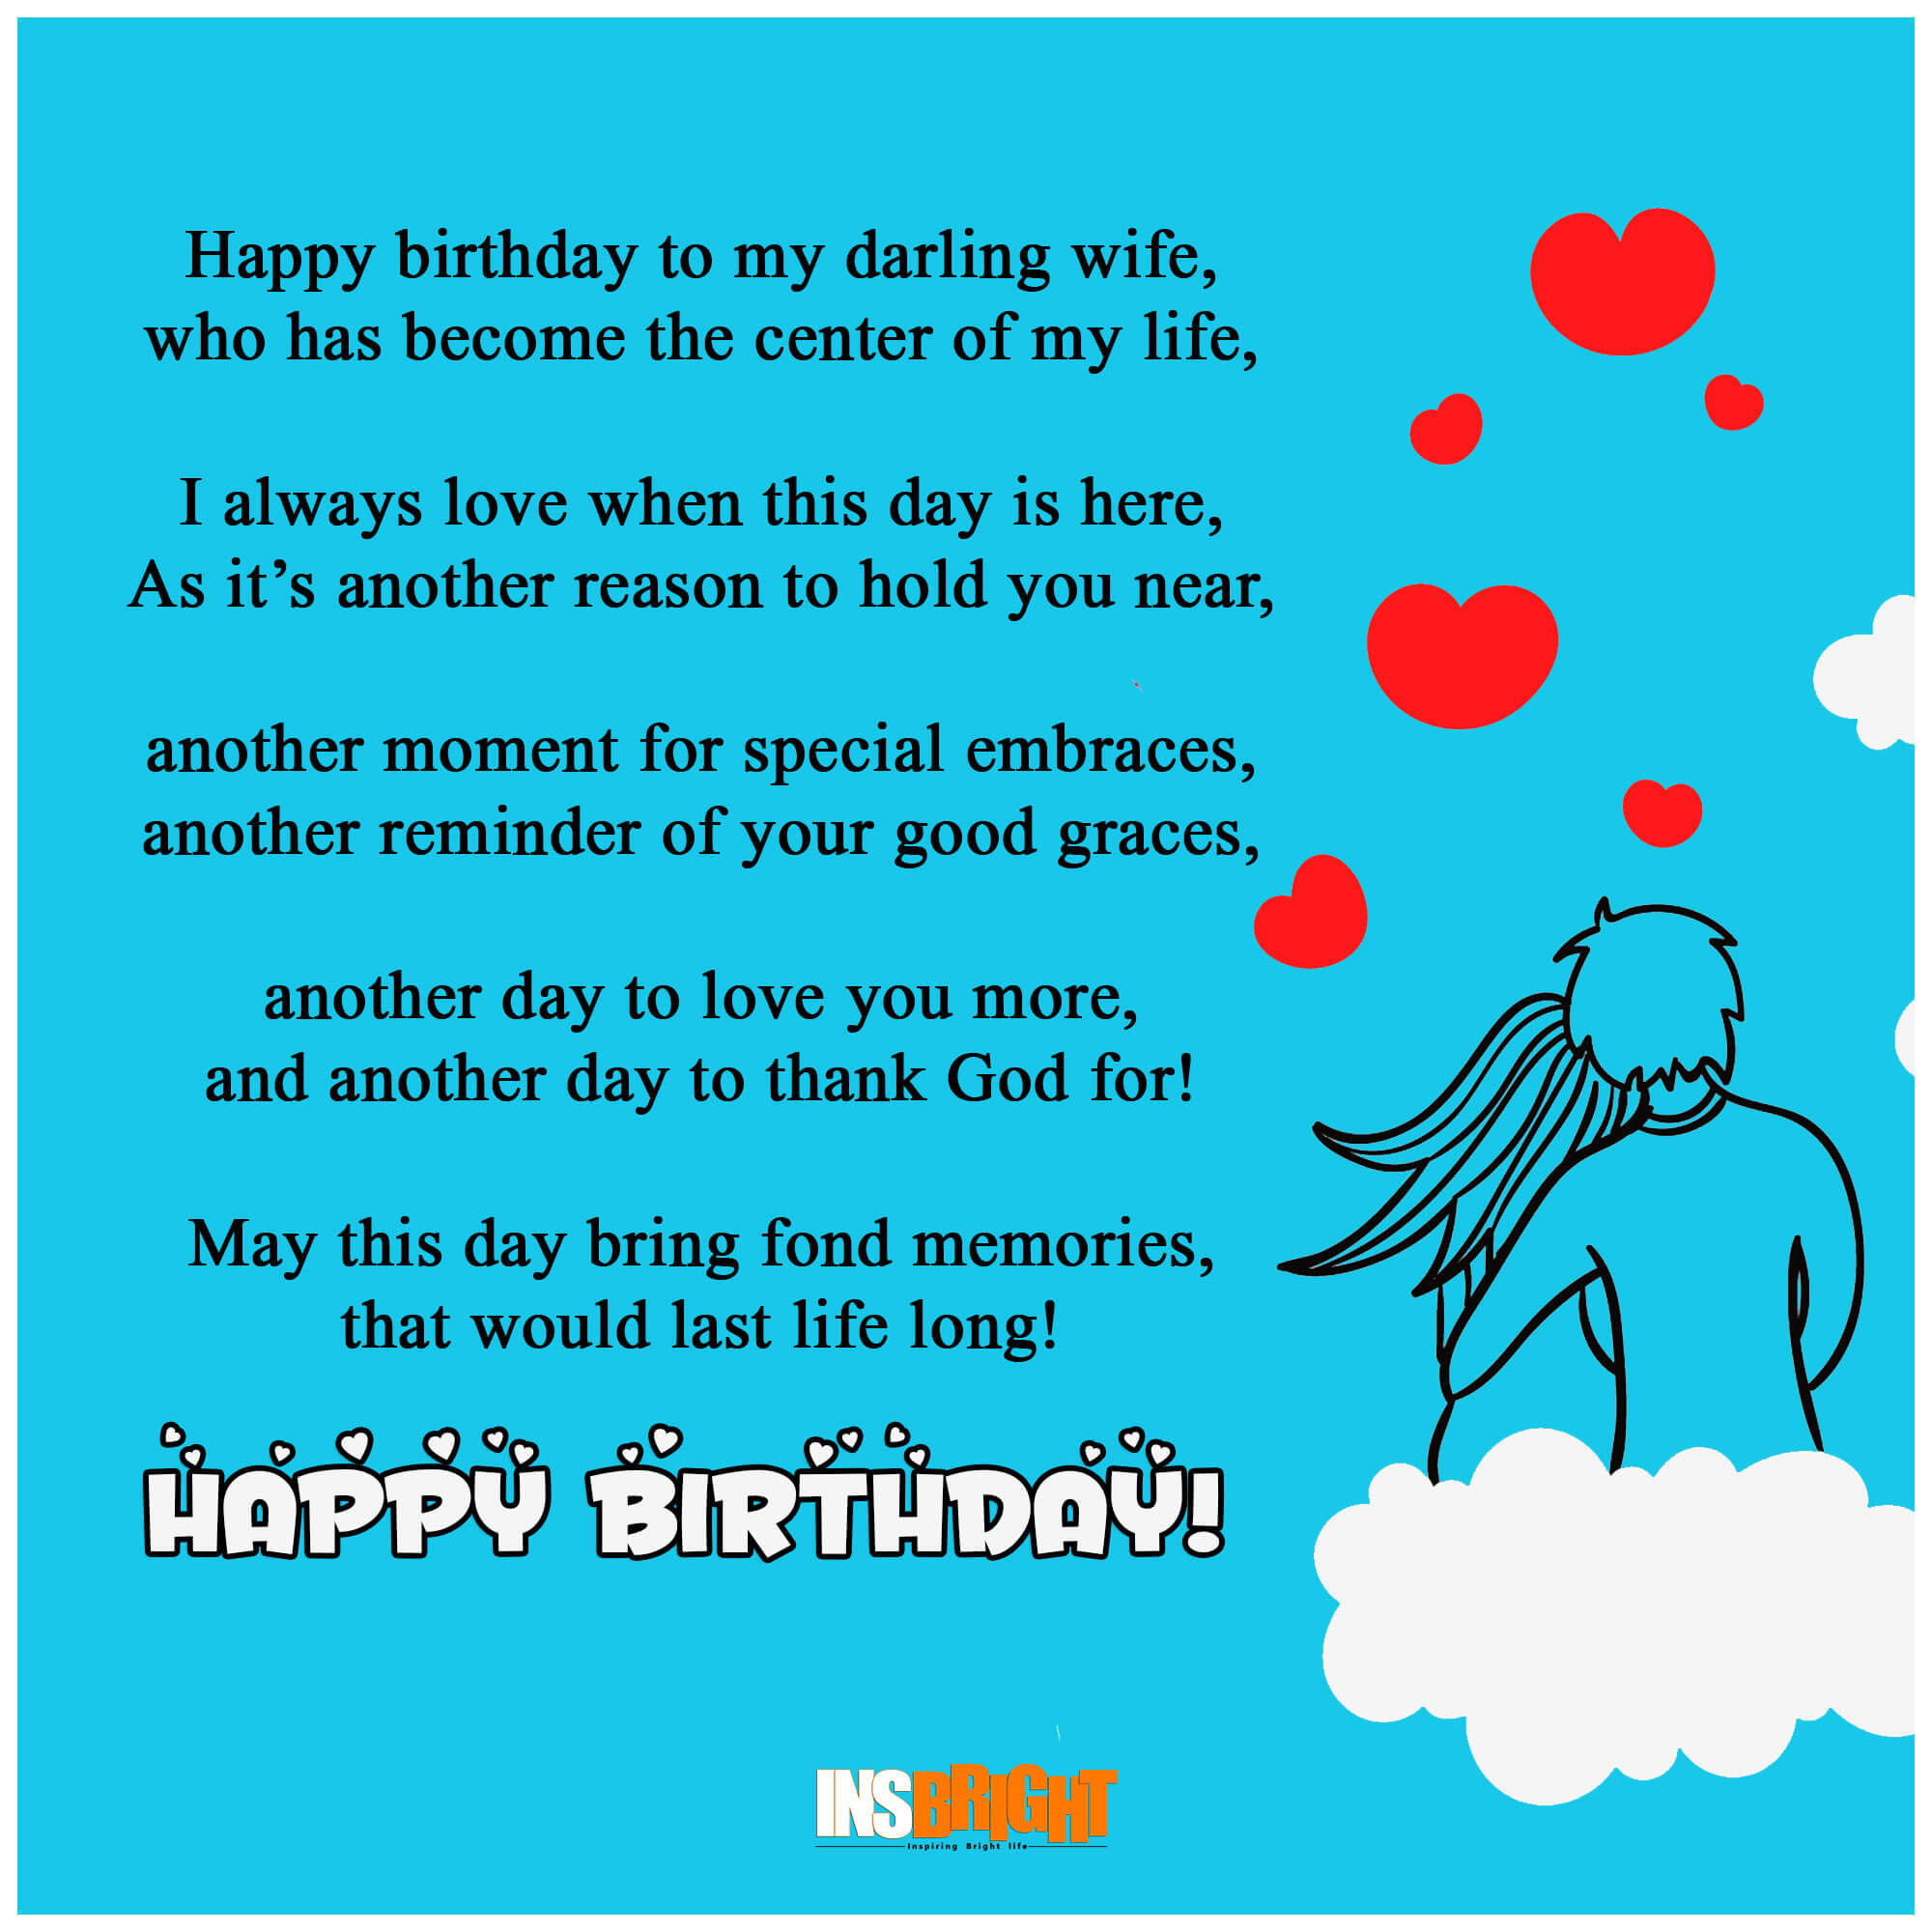 Birthday Wishes Poems  10 Romantic Happy Birthday Poems For Wife With Love From